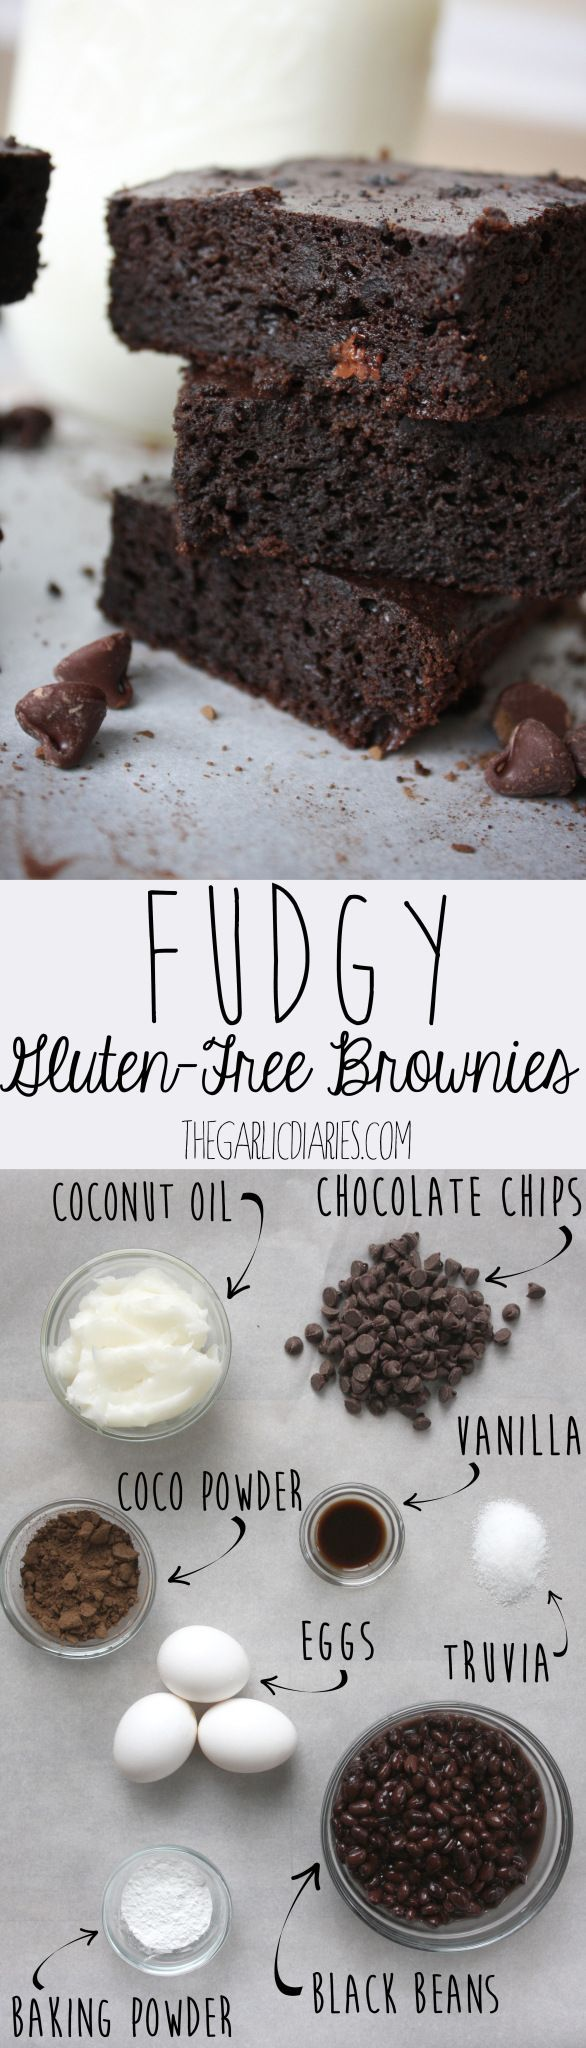 Fudgy Gluten-Free Brownies -- TheGarlicDiaries.com                                                                                                                                                                                 More